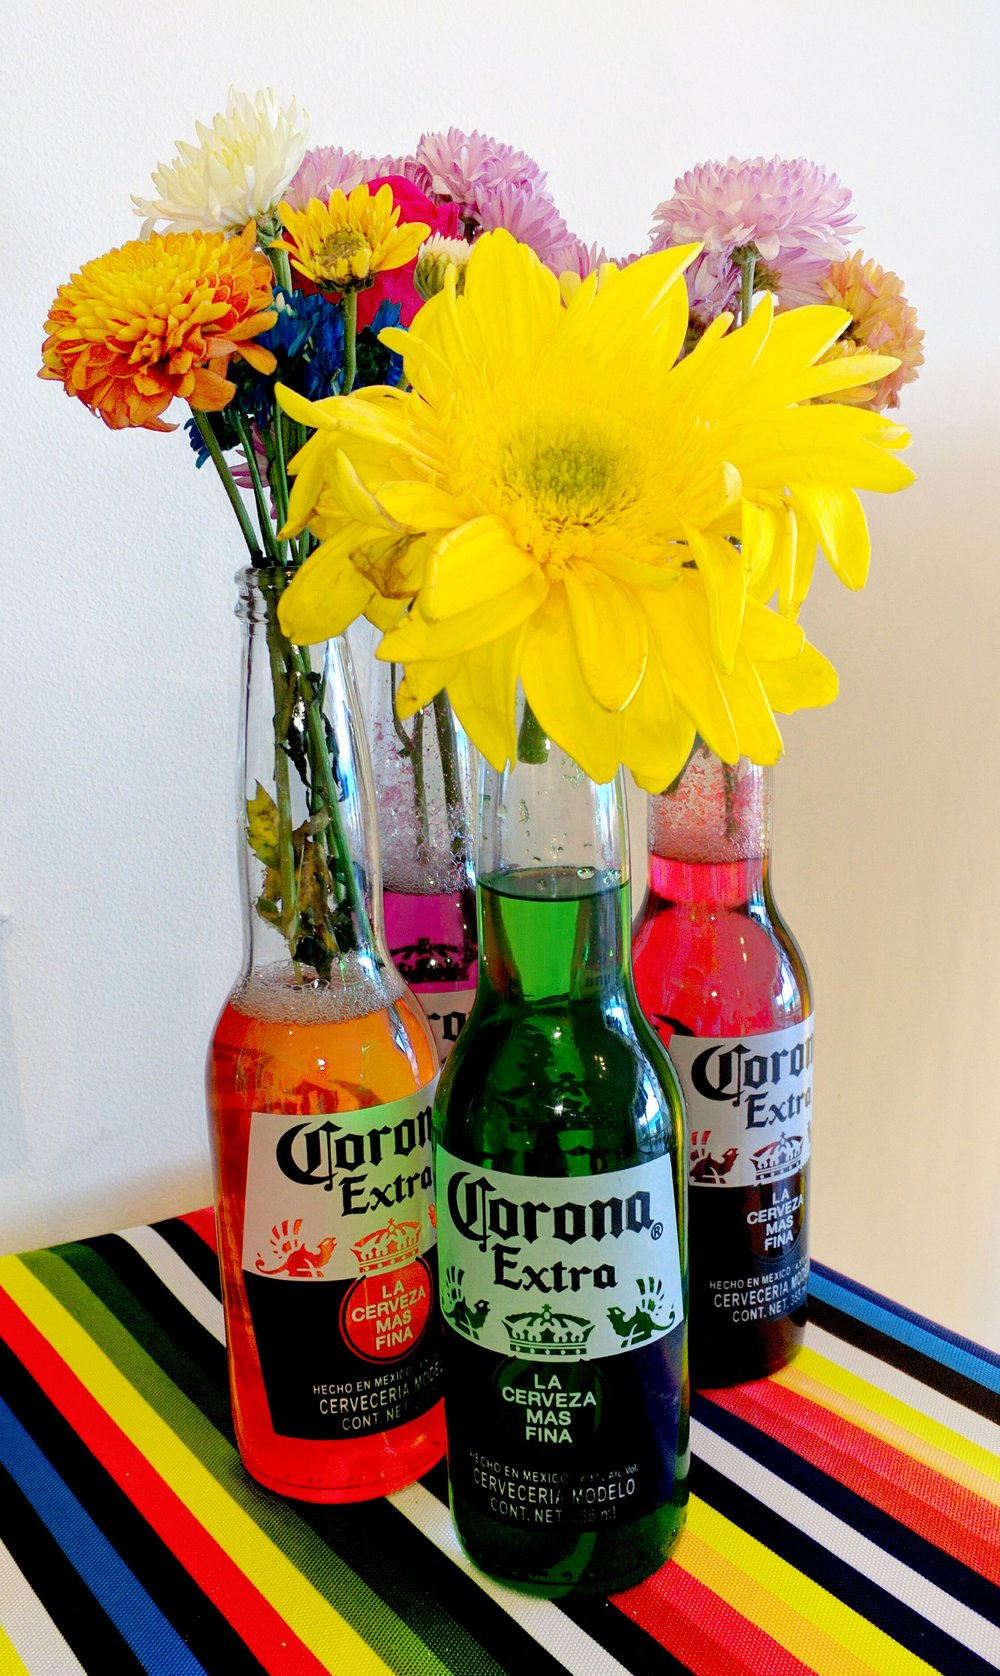 Fill up empty Corona bottles with food coloring! Make sure you bring the food coloring with you. They did not have this at the store so we did it with jello instead!